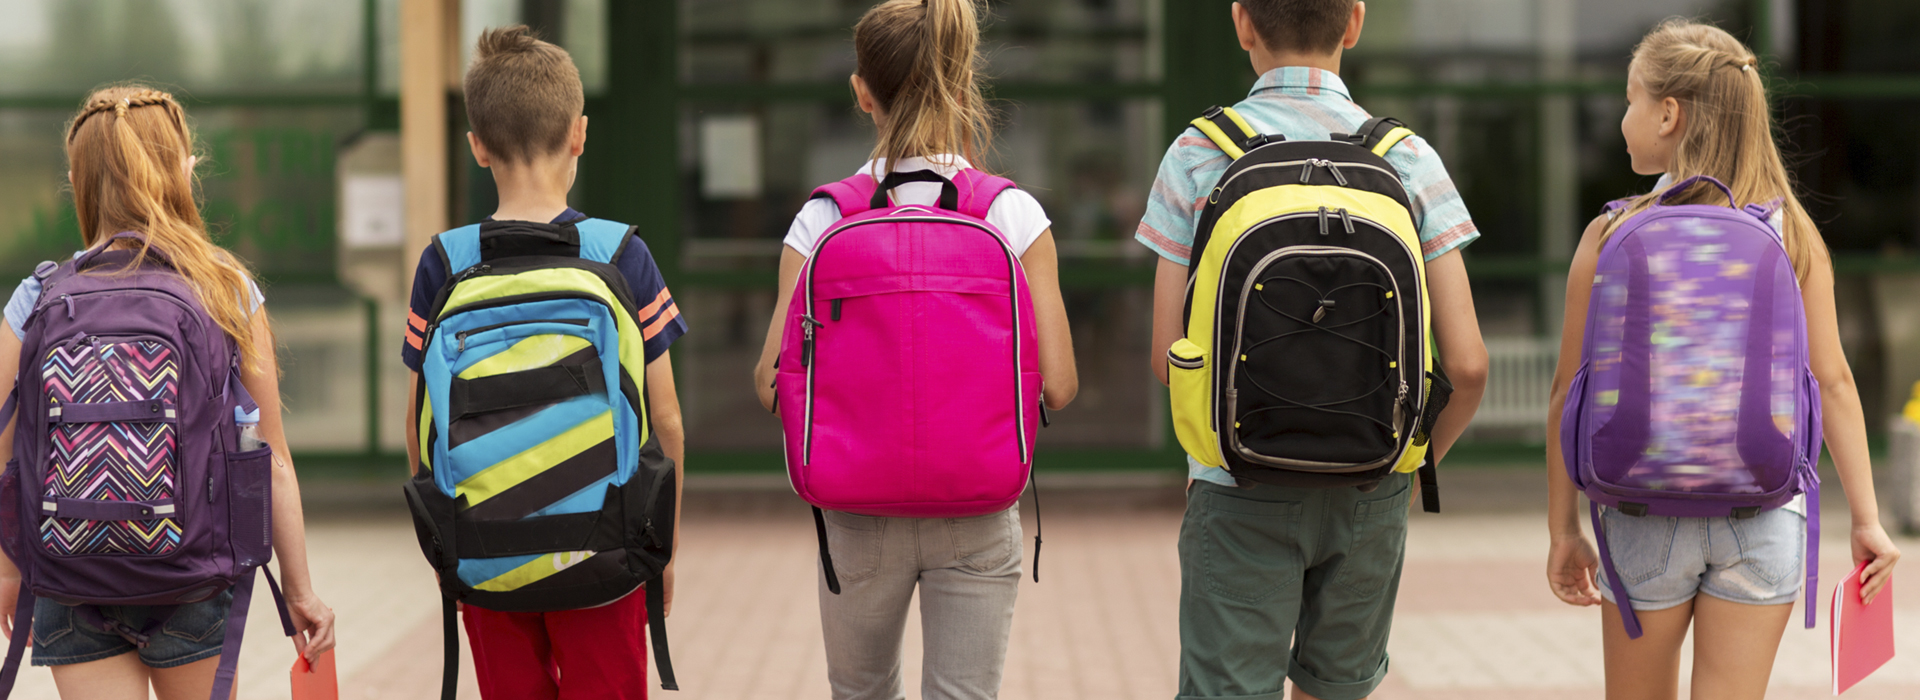 GAAR Annual Backpack Drive for Title 1 Students